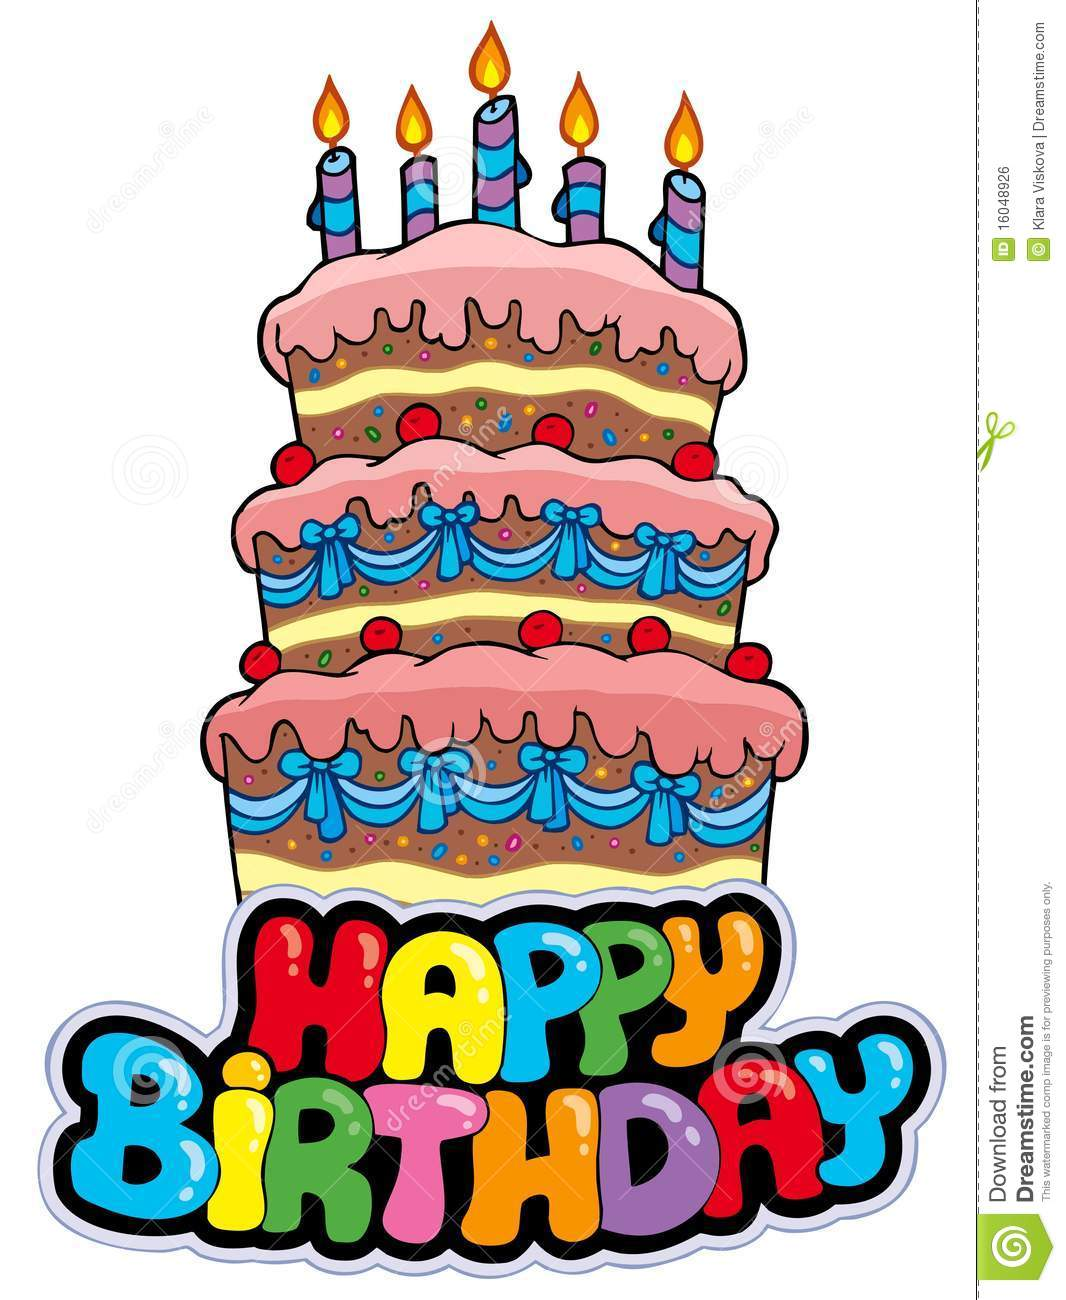 For Medieval Torture Device. Happy-birthday-sign-tall-cake-16048926